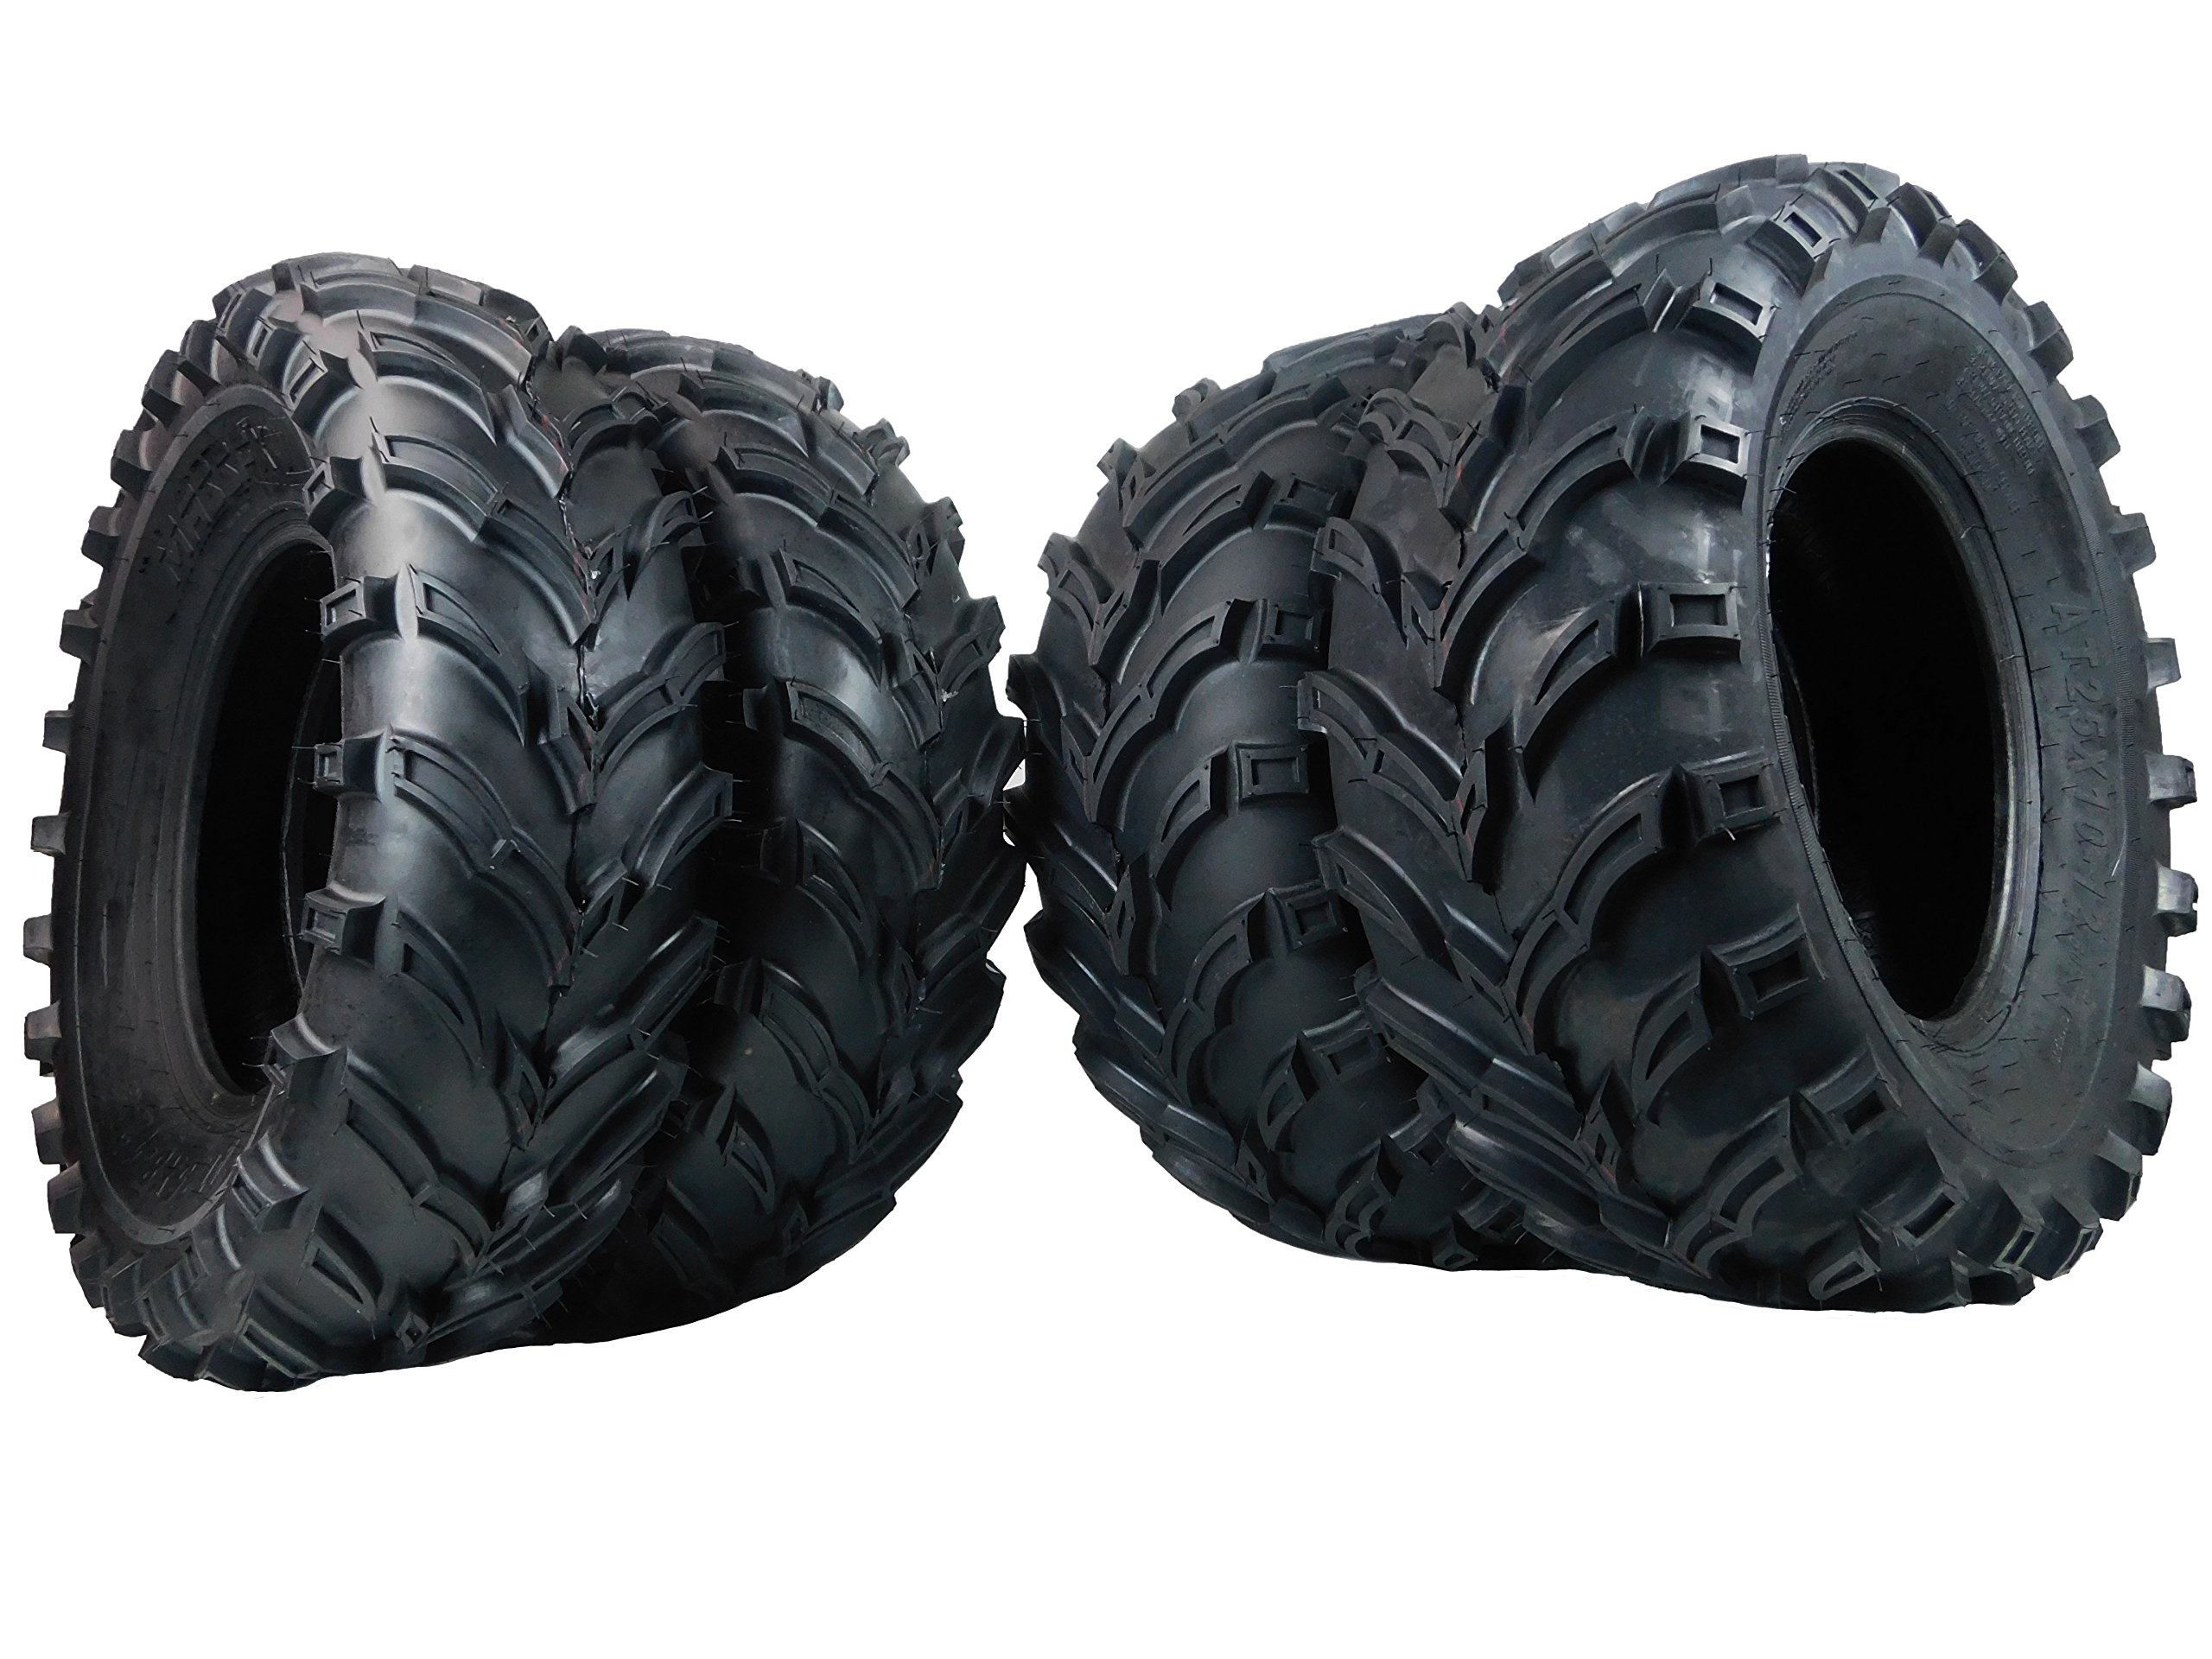 MassFx MS ATV/UTV Tires 25 x 8-12 Front & 25 x 10-12 Rear, Set of 4 25x8x12 25x10x12